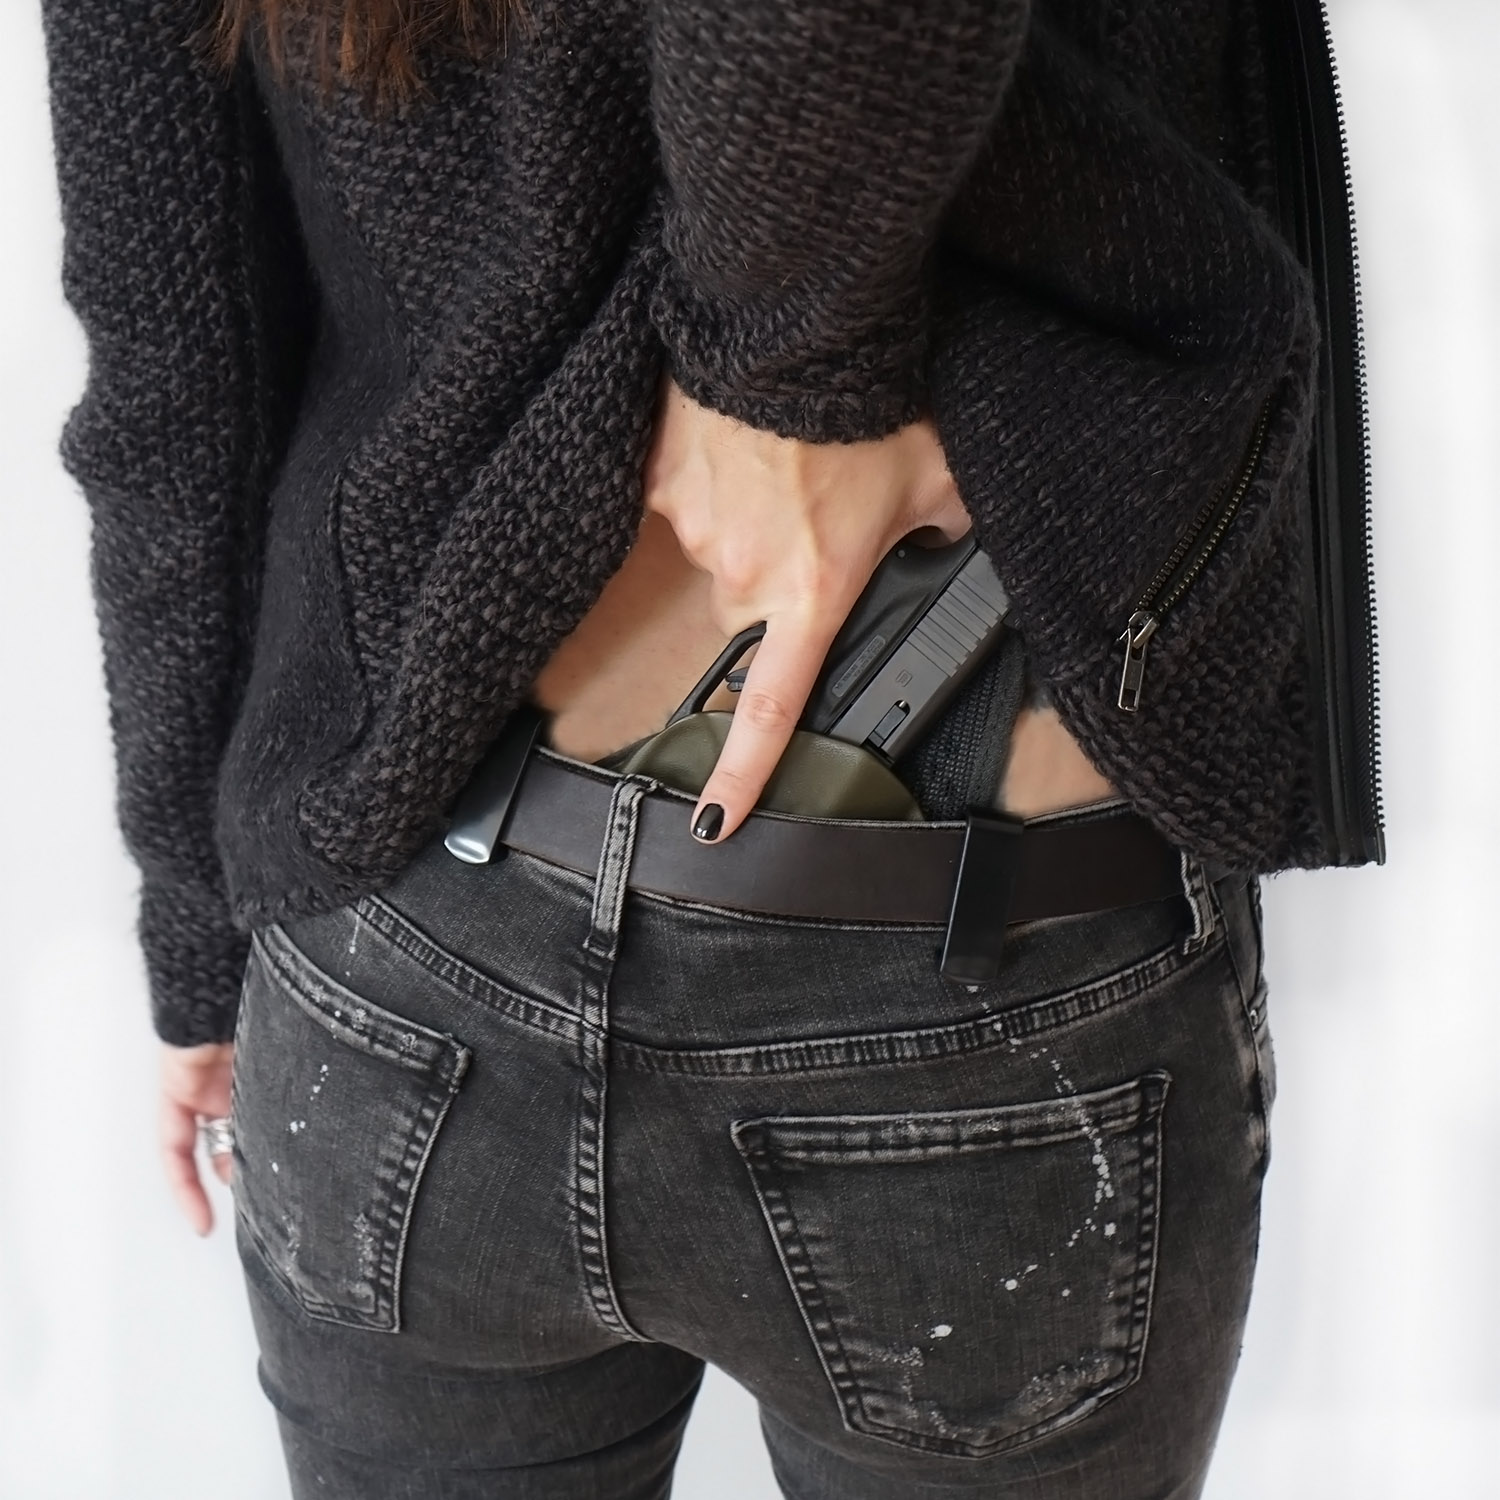 Women's Concealed Carry Outfit Idea